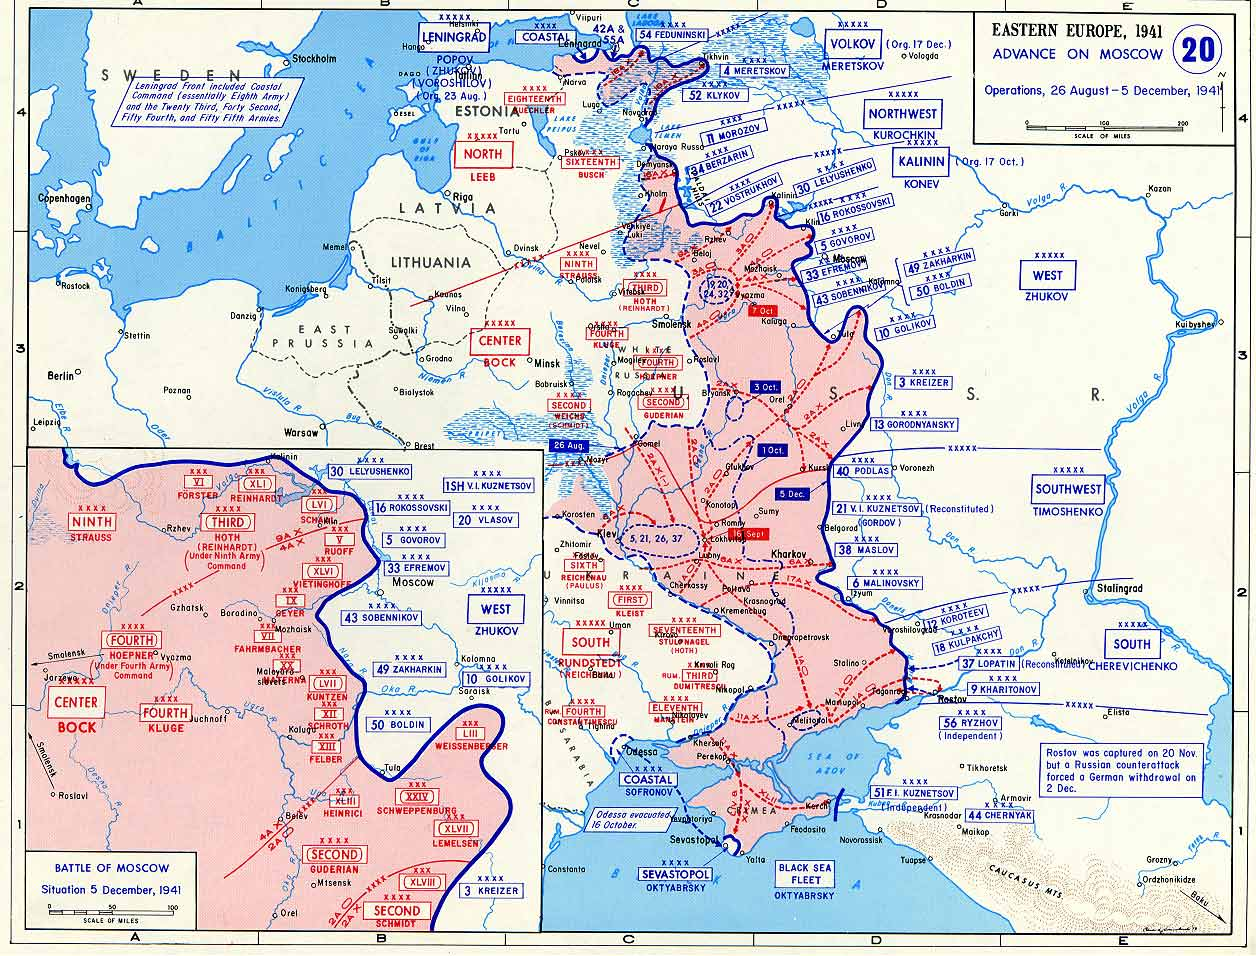 map of german advance on moscow august december 1941. Black Bedroom Furniture Sets. Home Design Ideas